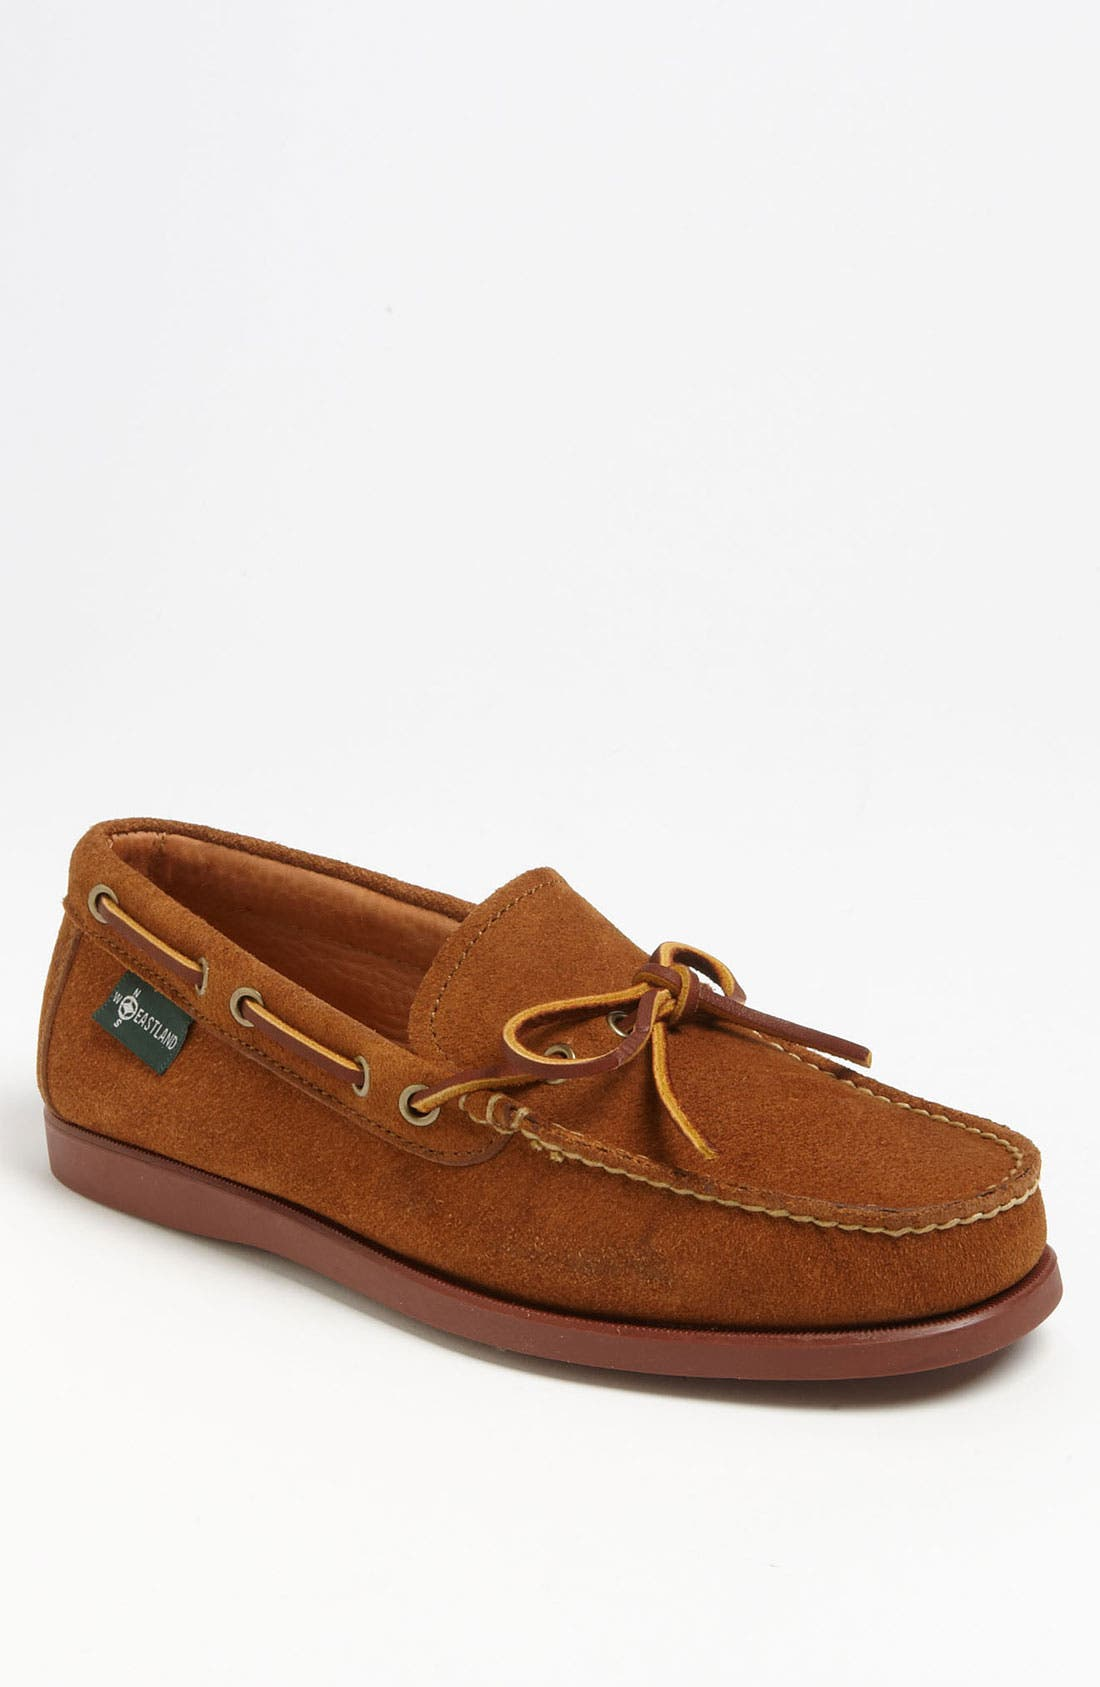 Main Image - Eastland 'Yarmouth 1955' Boat Shoe (Online Only)